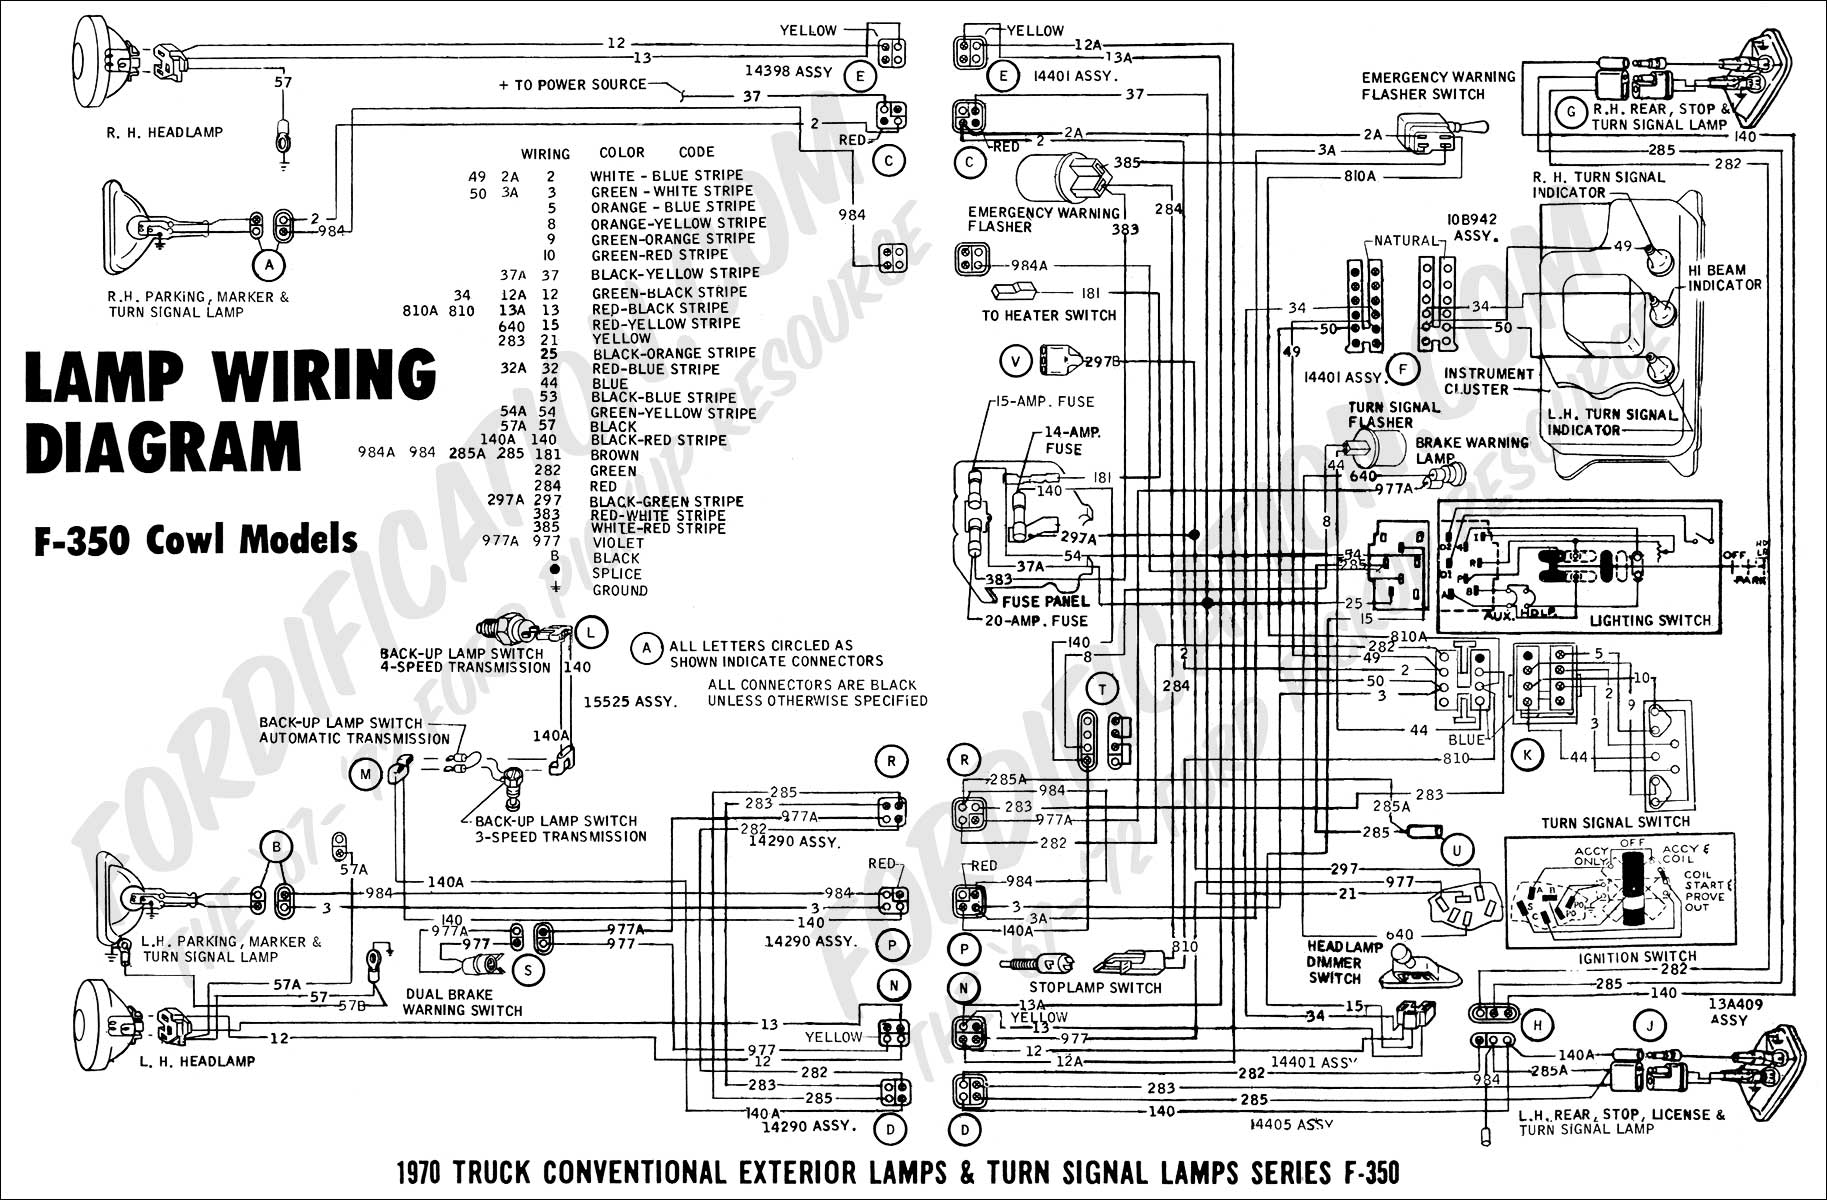 Ford 7 Pin Wiring Diagram 1992 F350 Library Trailer F250 550 Transmission Starting Know About